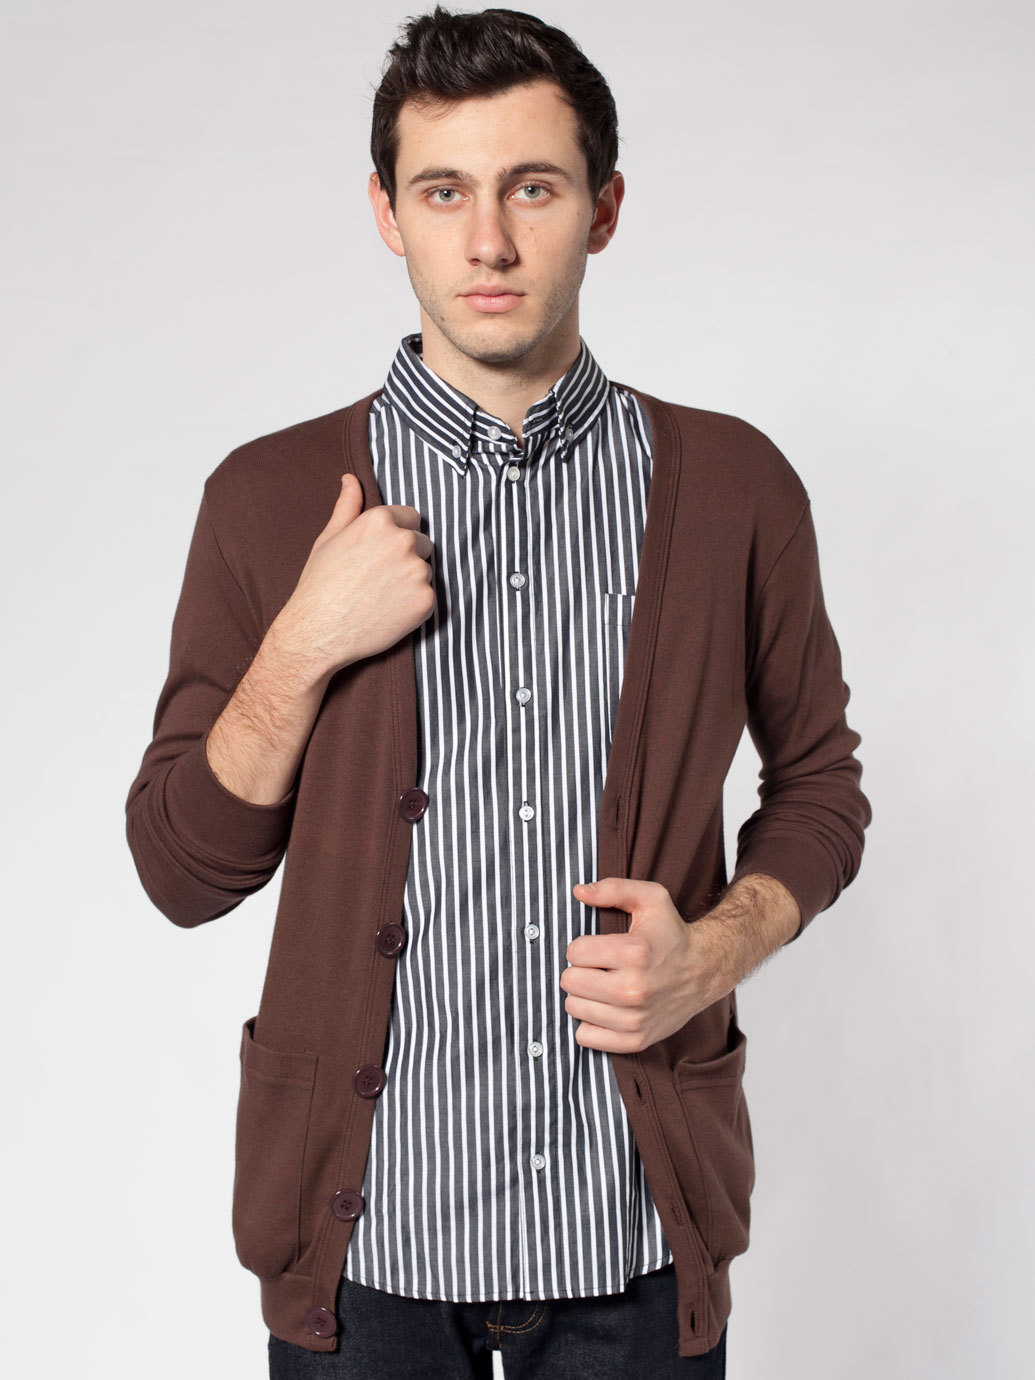 American clothing stores for men